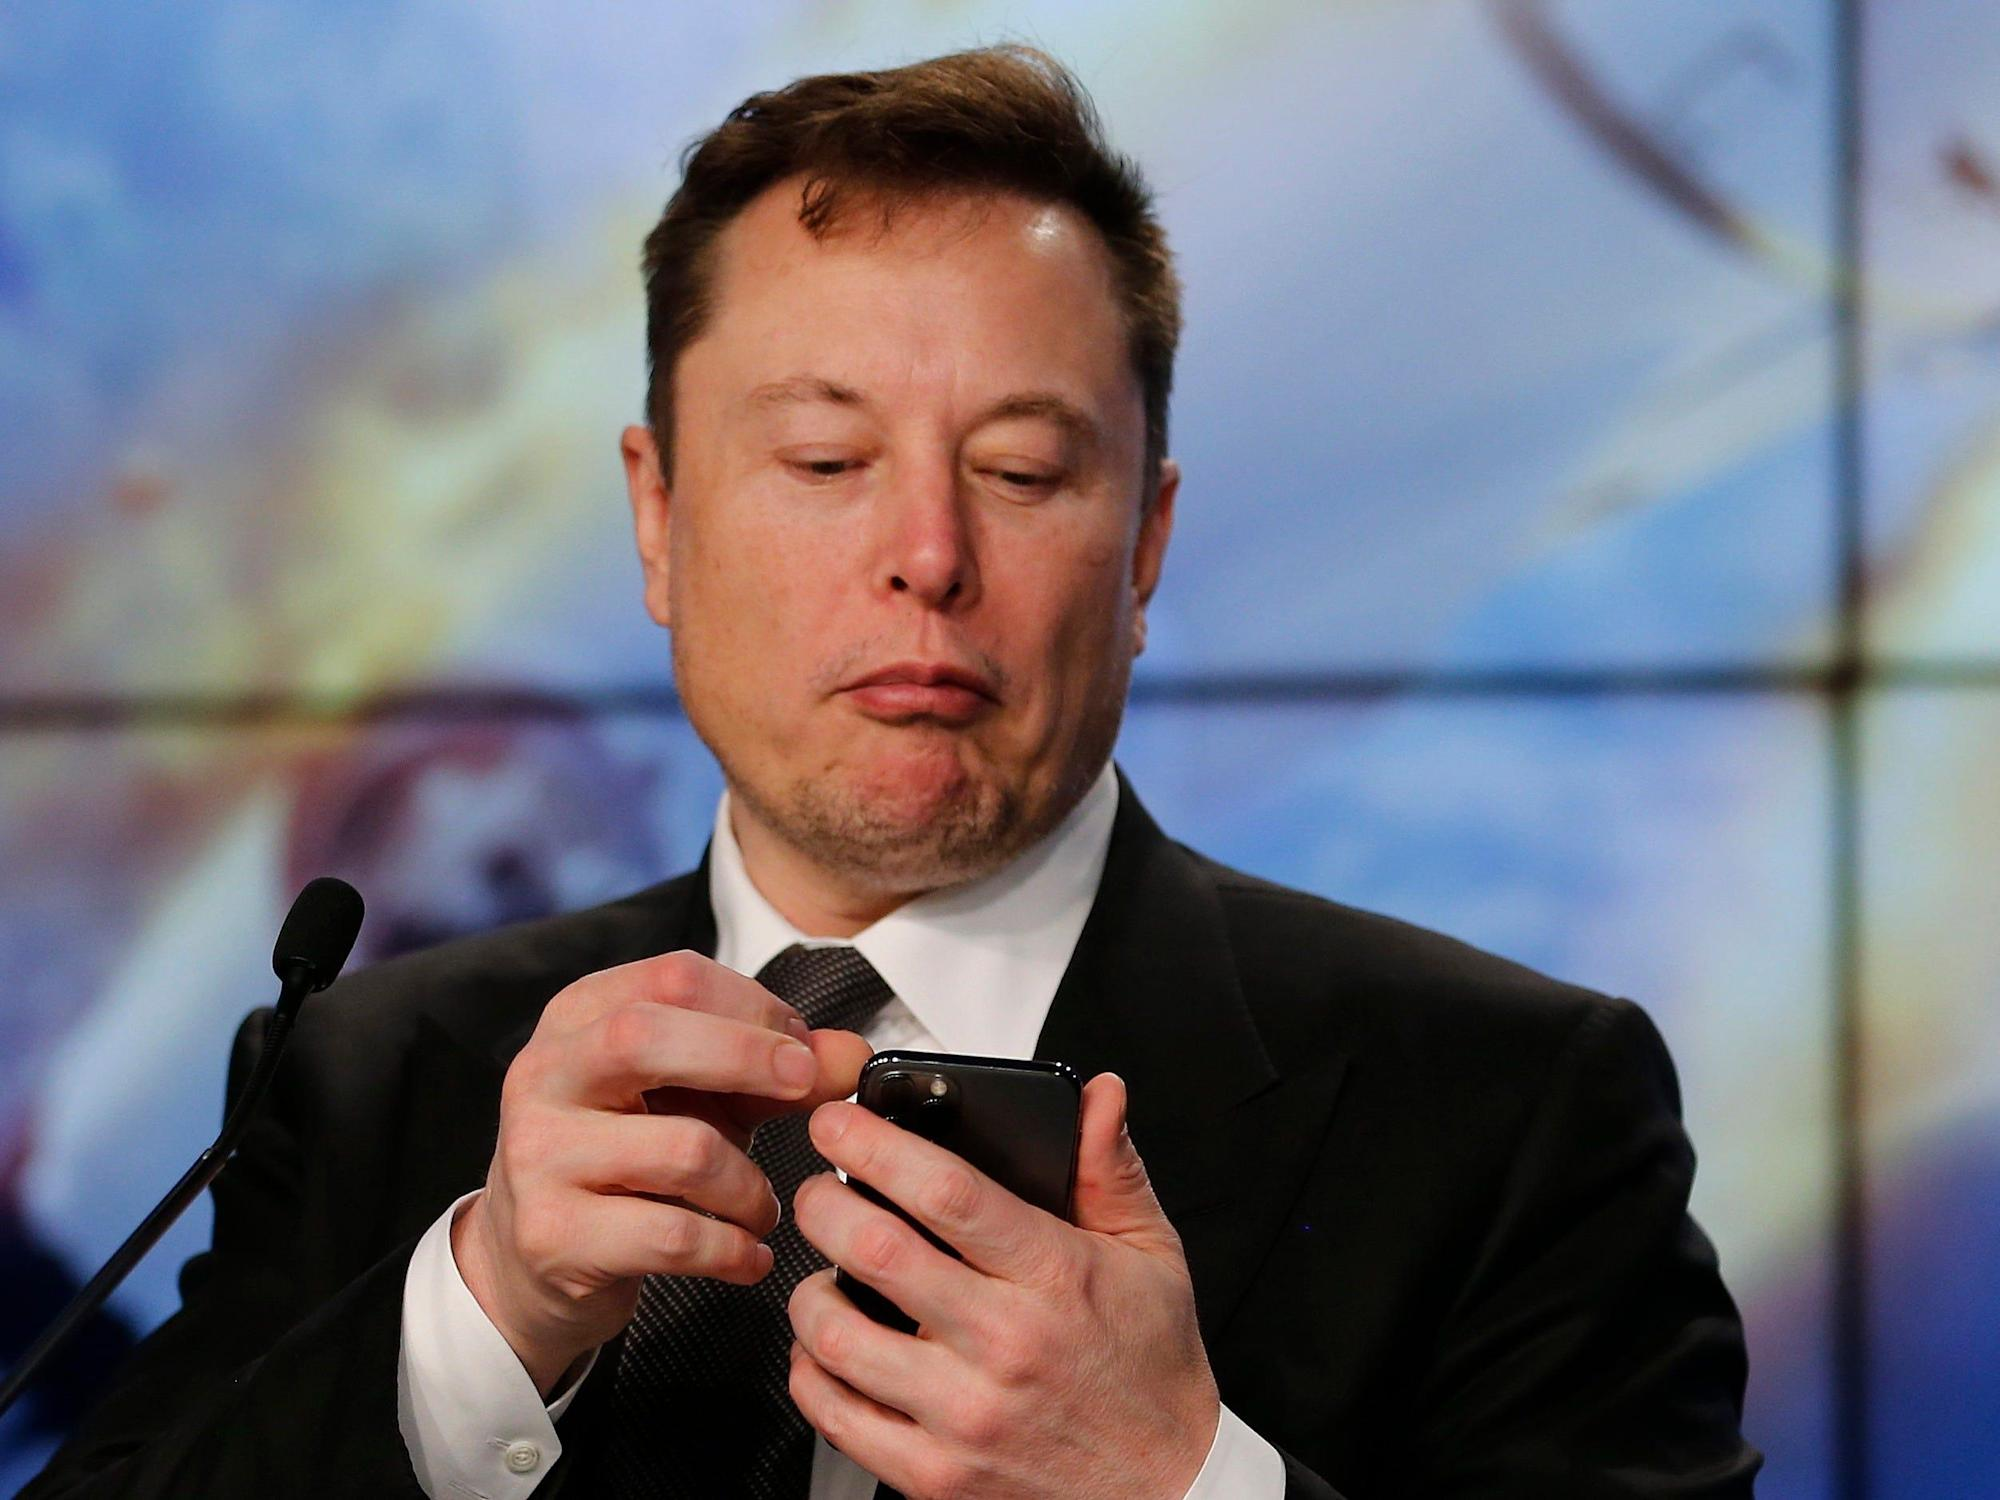 Tesla's solar division asks employees to scour social media for complaints about both the company and Elon Musk, trying to get customers to delete their posts, former employees say